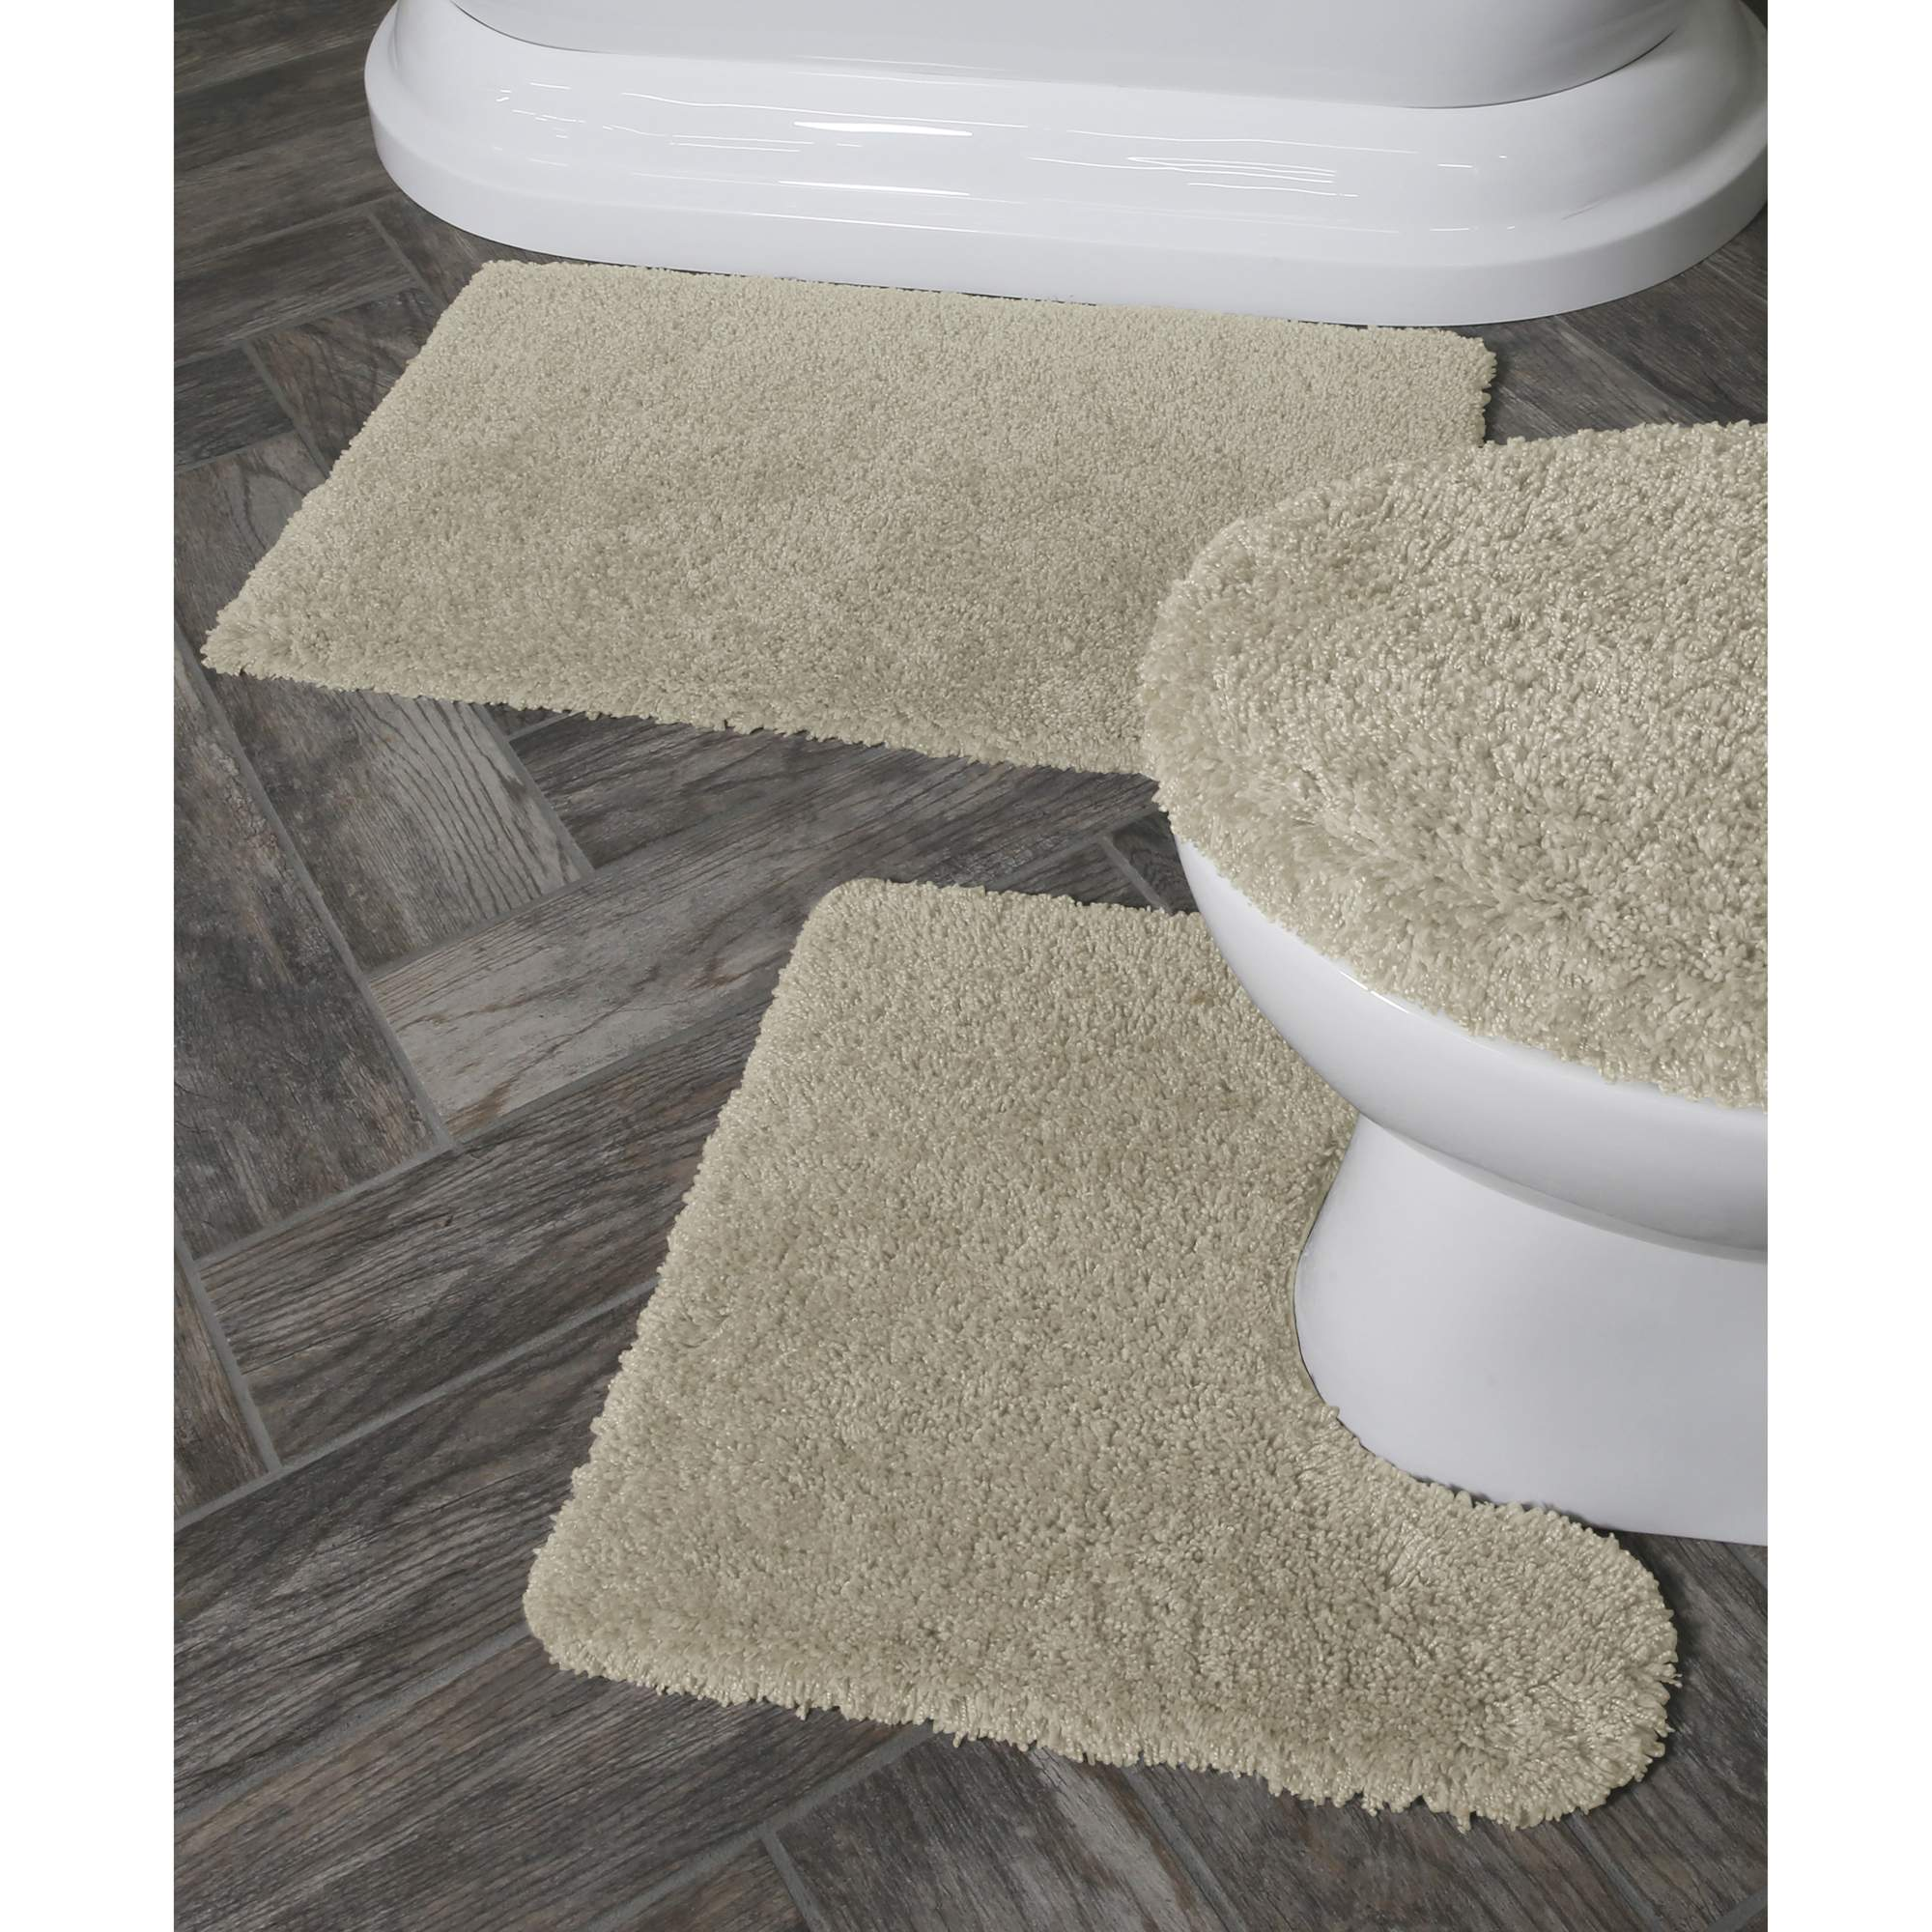 Better Homes And Gardens Thick And Plush 3 Piece Bath Rug Set   Walmart.com